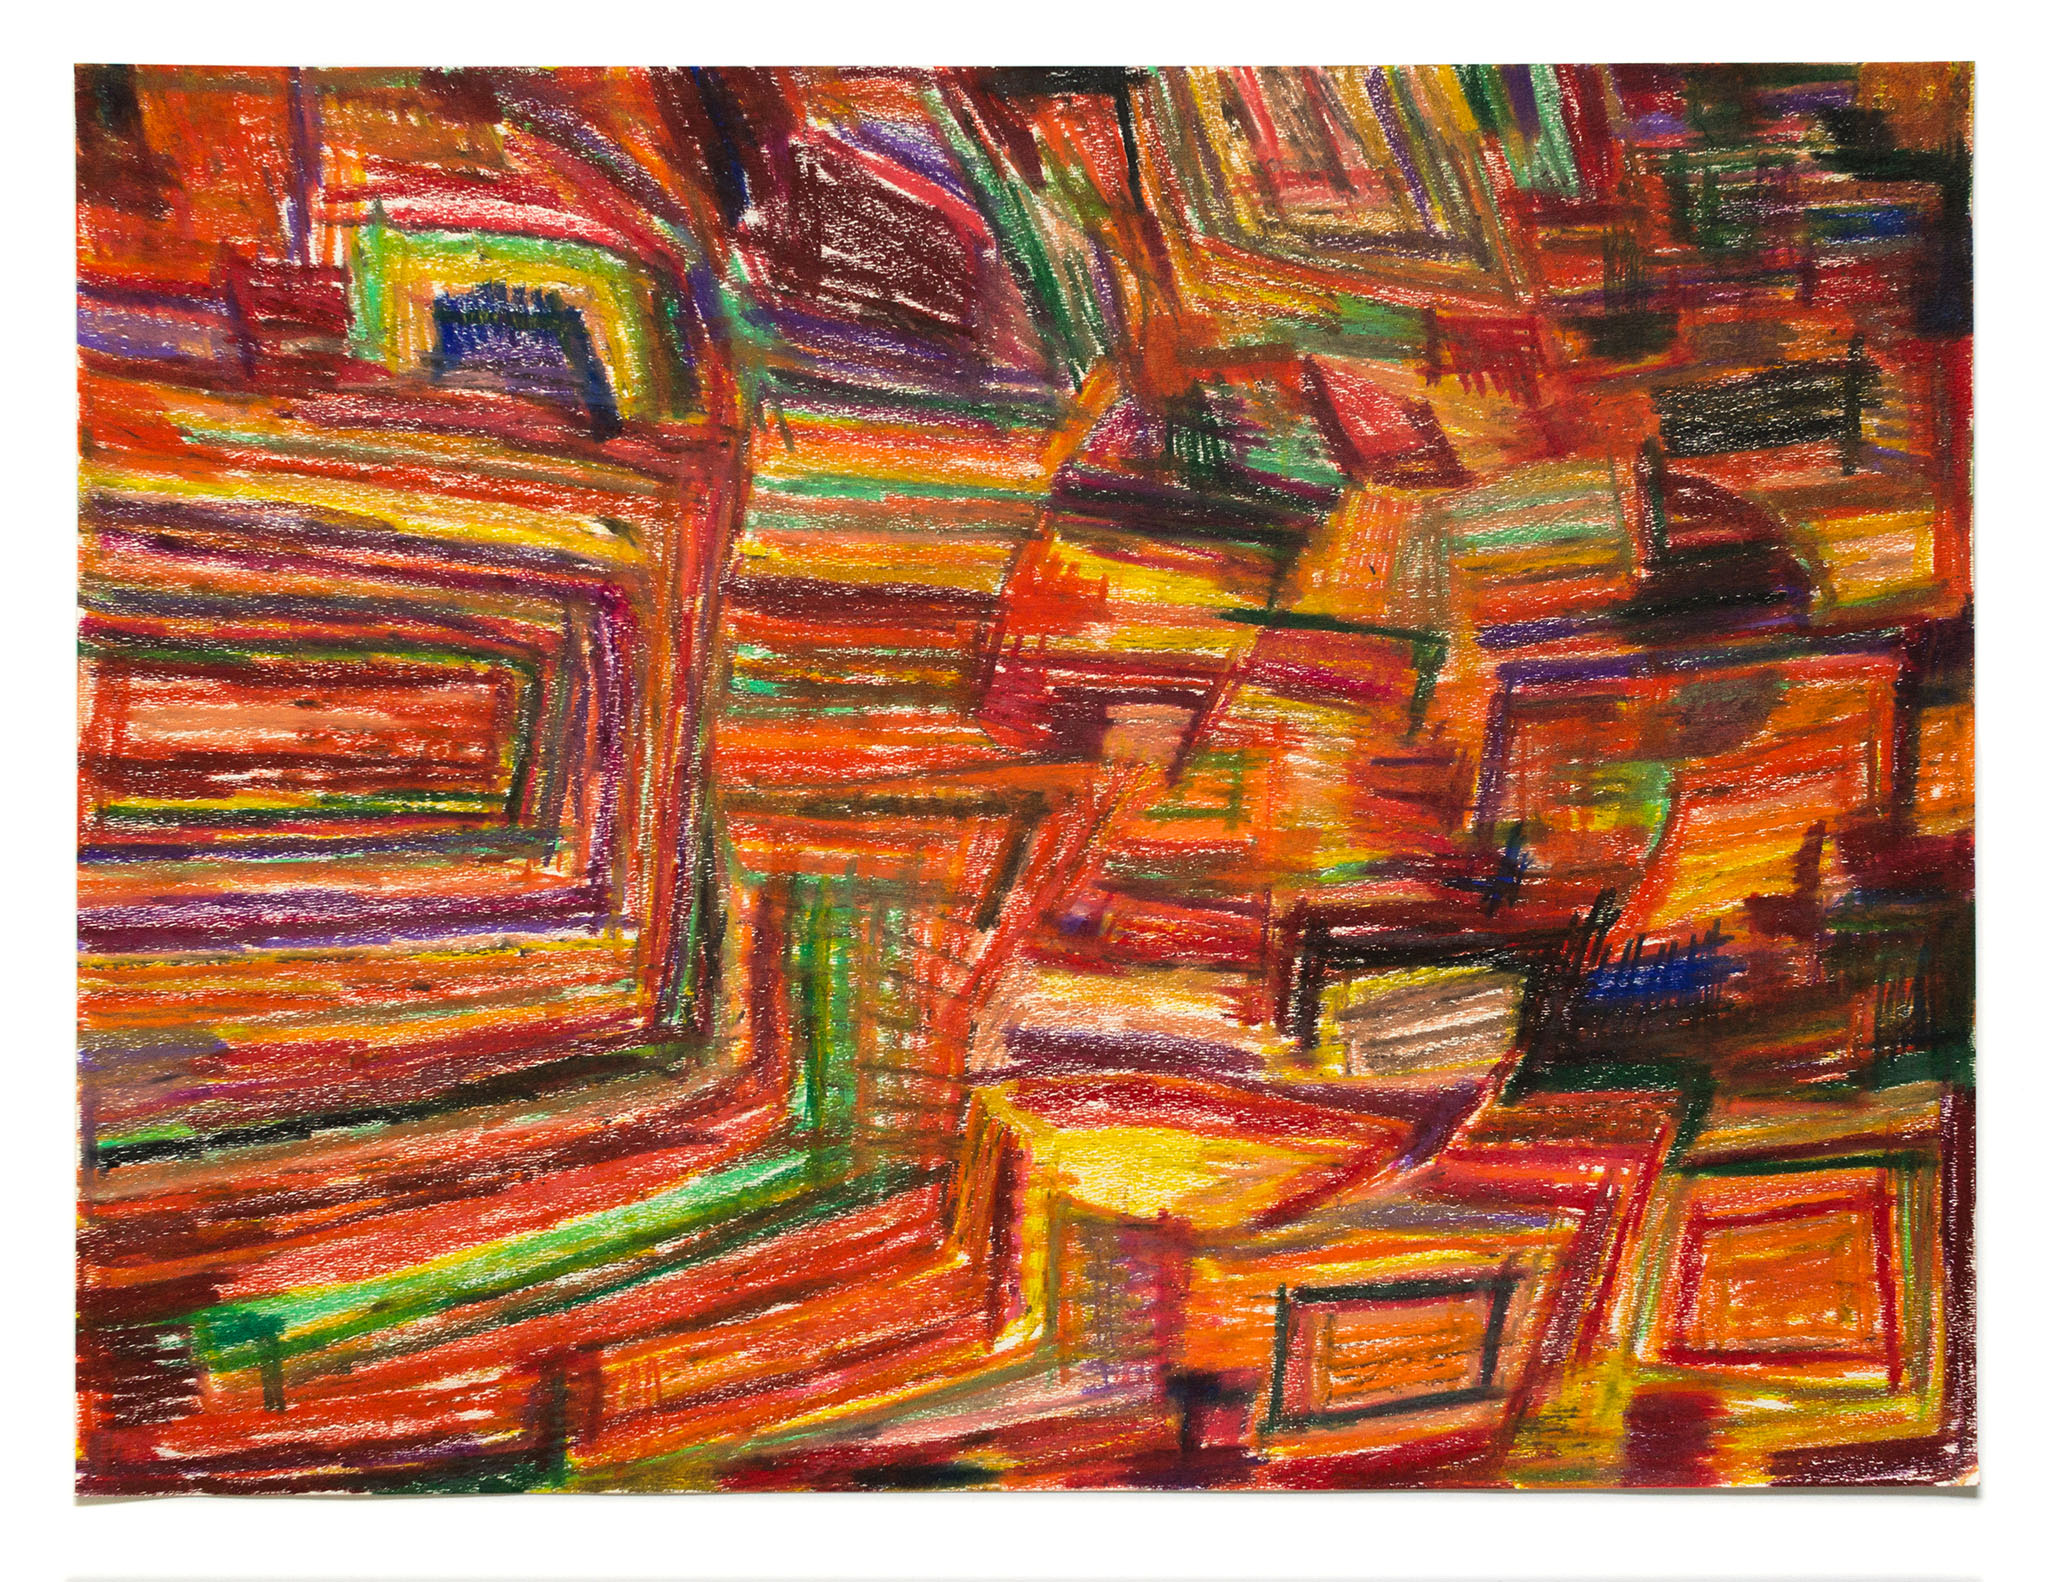 Raydell Early, Untitled (RE 025), Work on paper, 18 x 24 inches